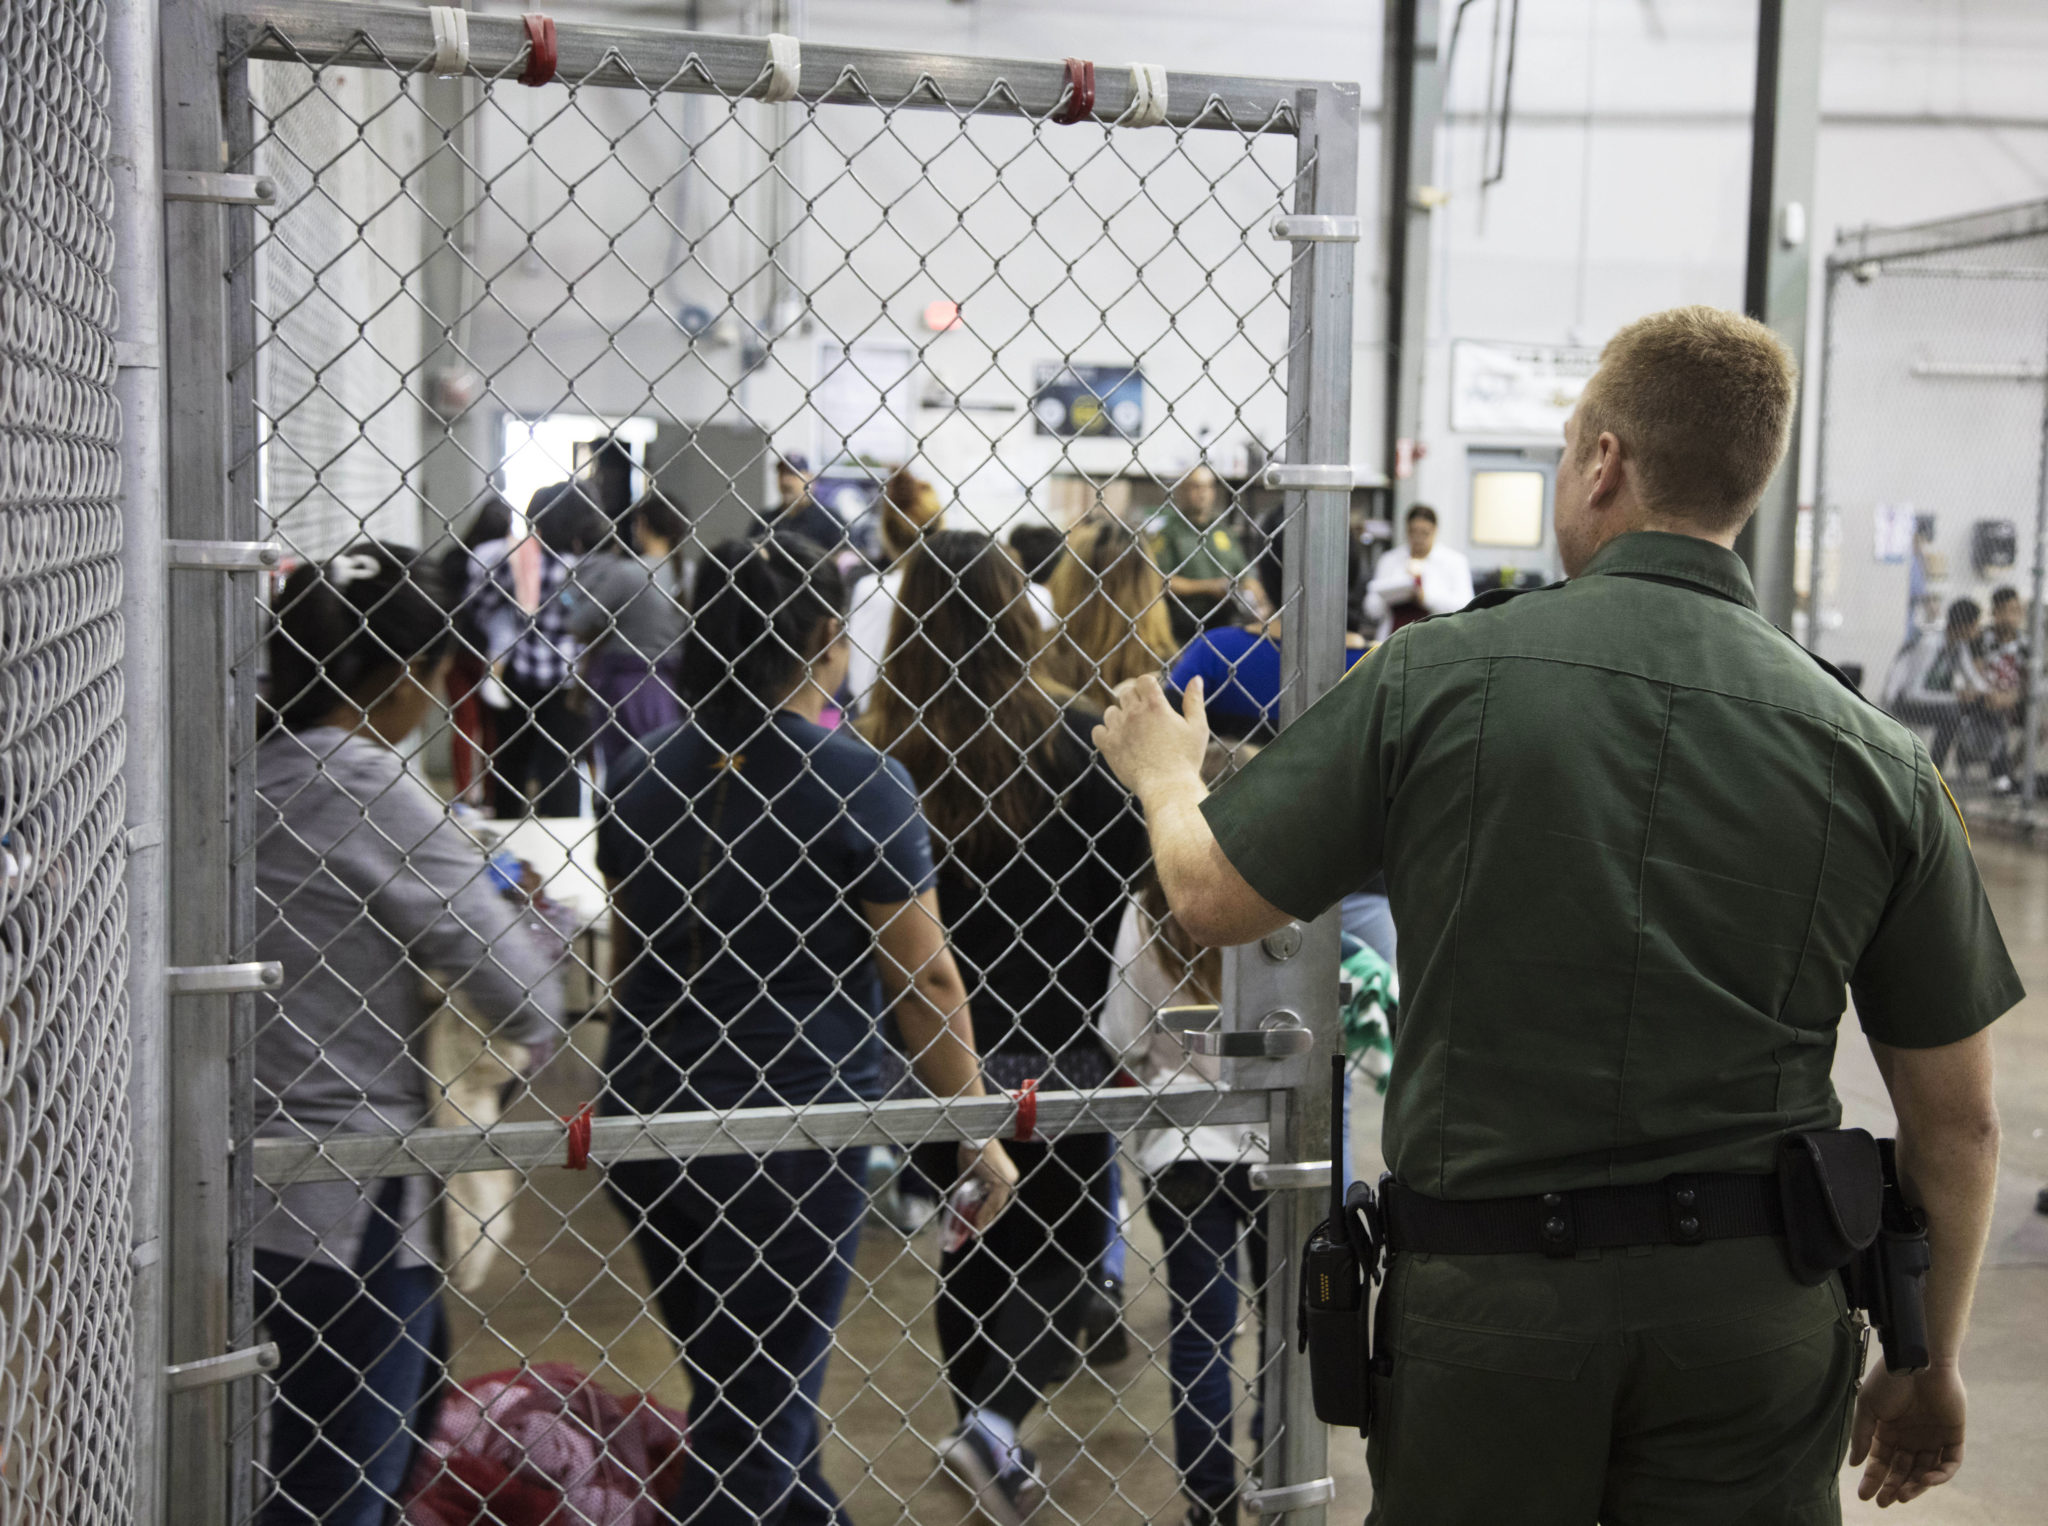 A Border Patrol agent watches as people who've been taken into custody stand in line at a facility in McAllen.